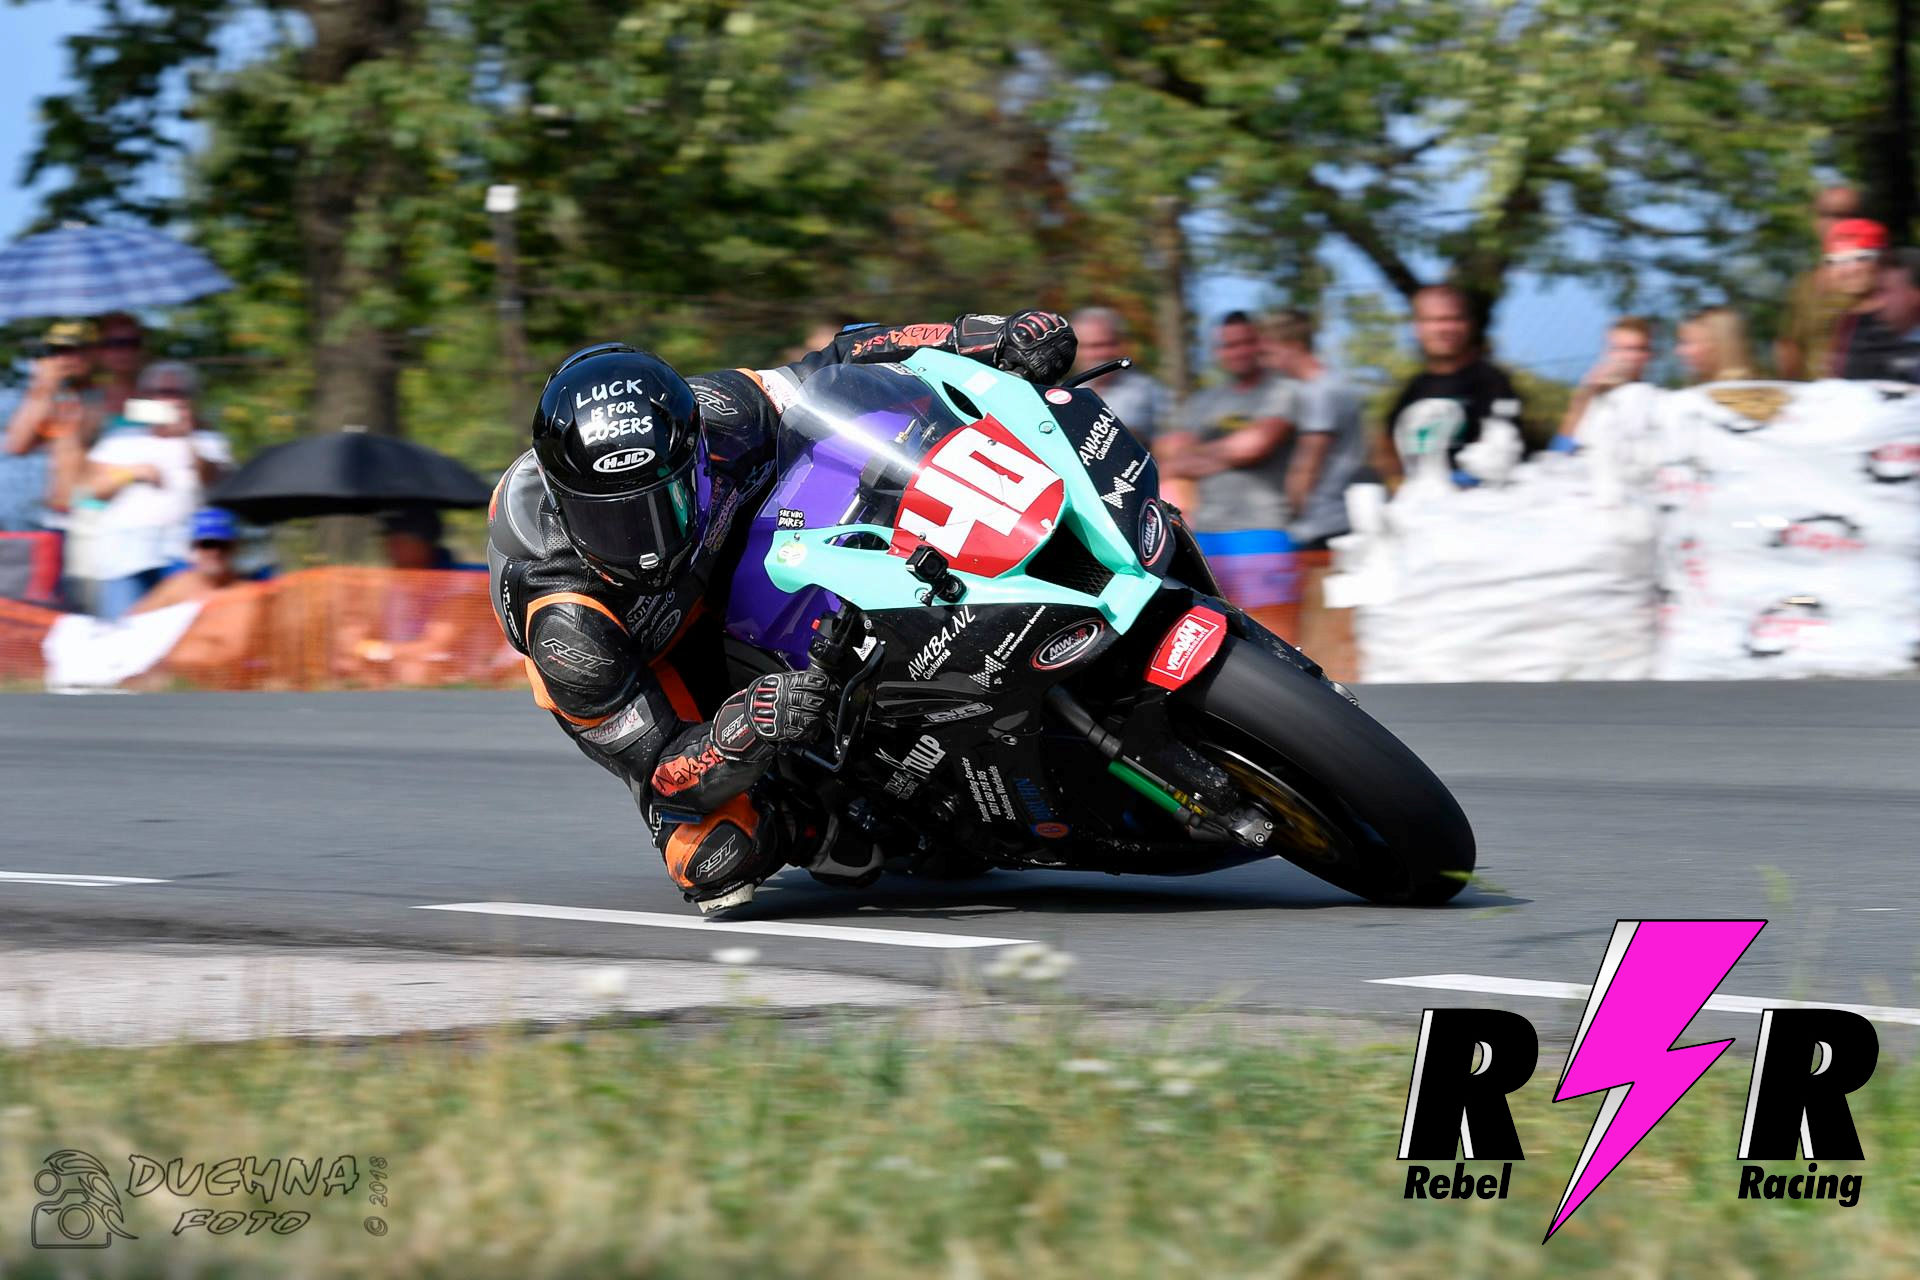 Schoots Announces 2019 IRRC Voyage With Rebel Racing